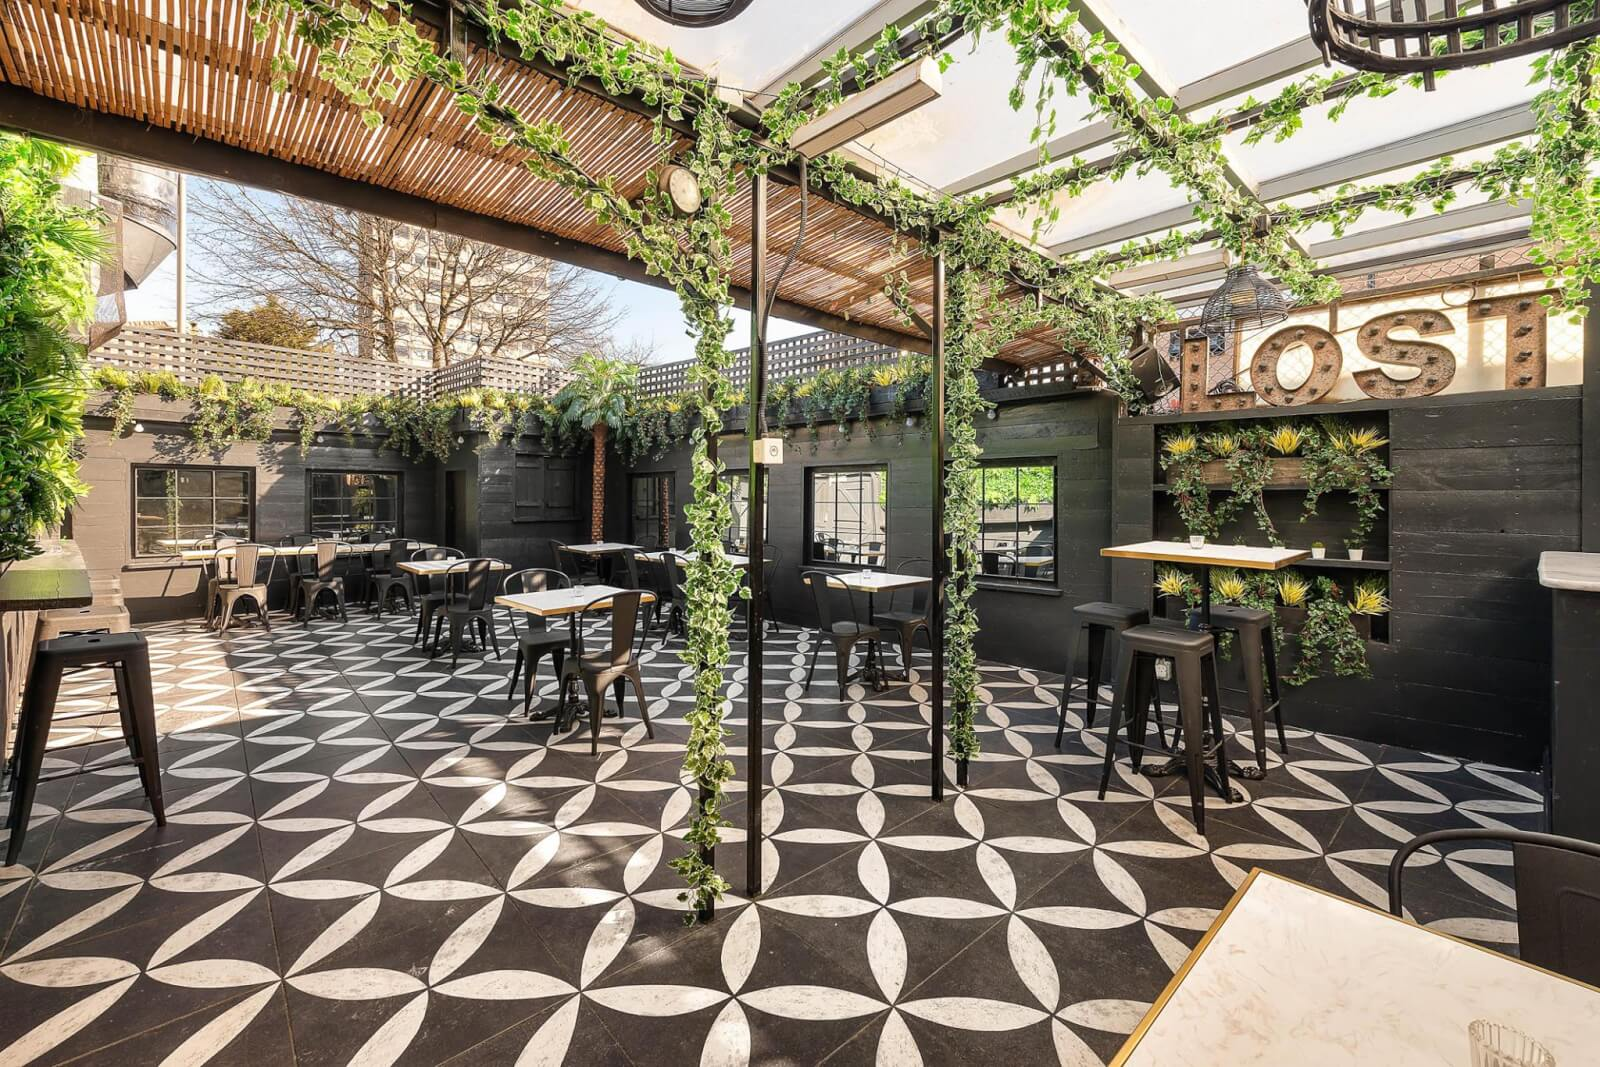 Lost Society, one of the best outdoor bars in London